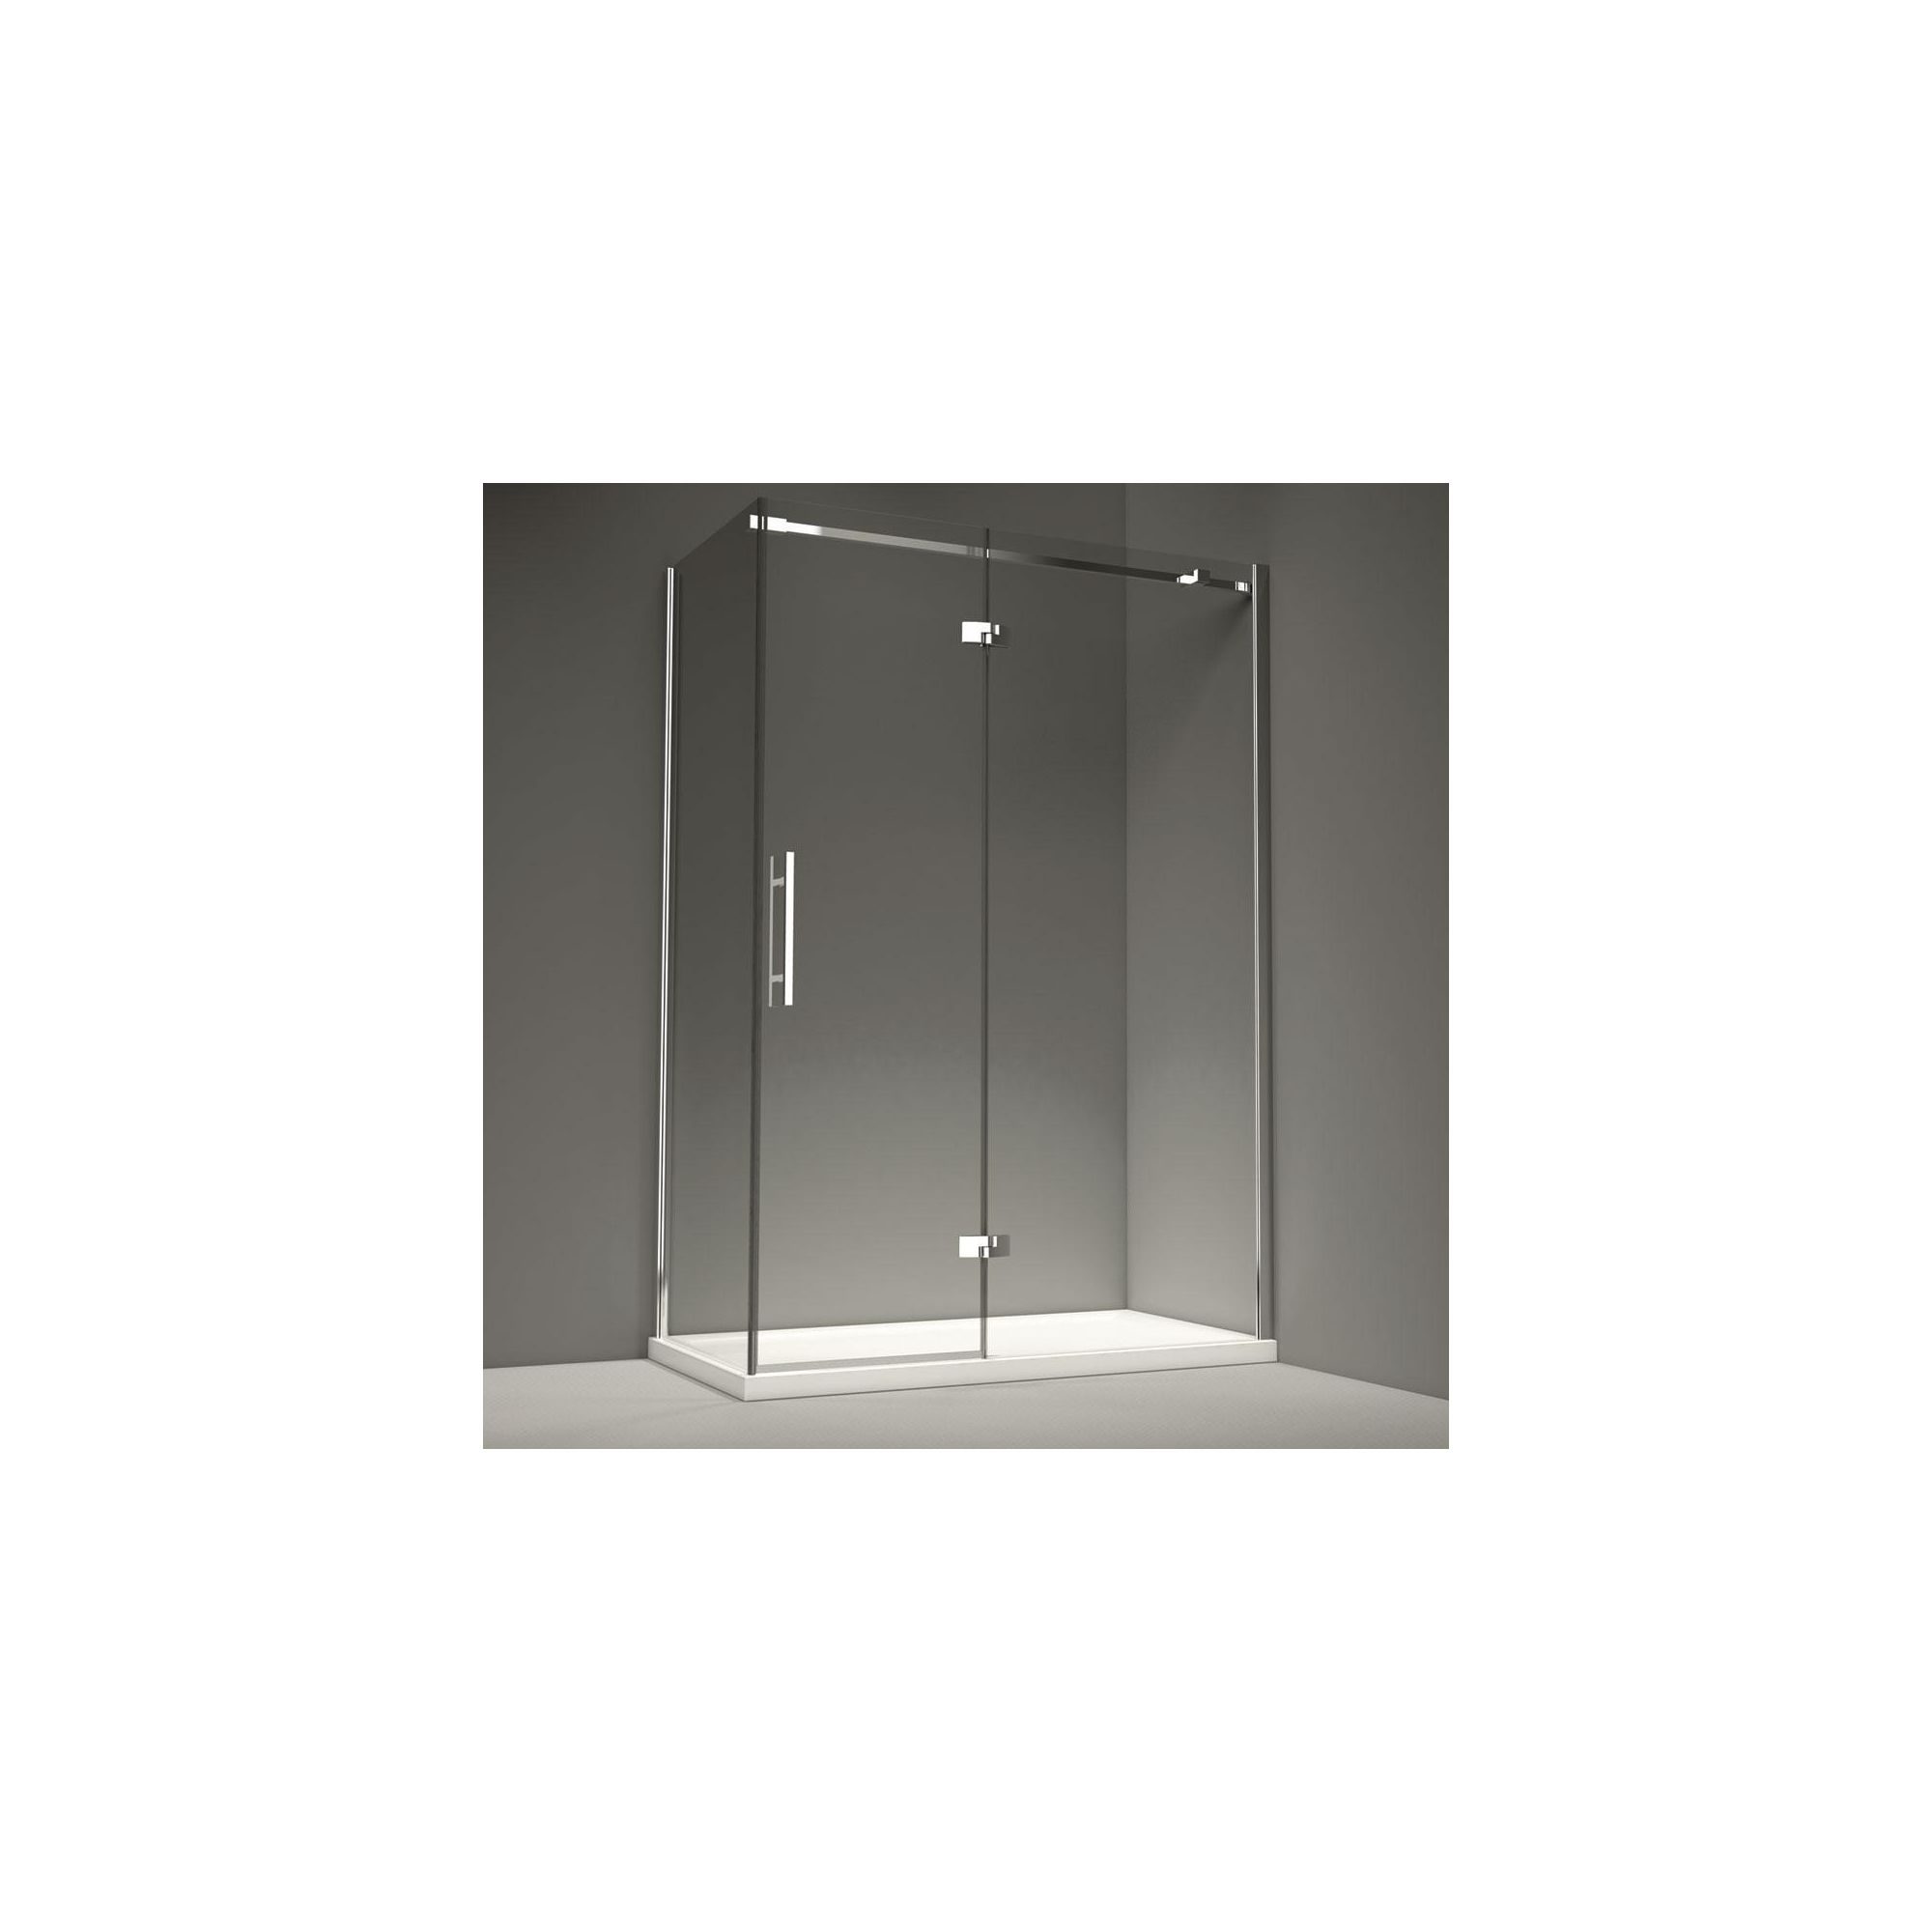 Merlyn Series 9 Inline Hinged Shower Door, 1400mm Wide, 8mm Glass, Right Handed at Tesco Direct